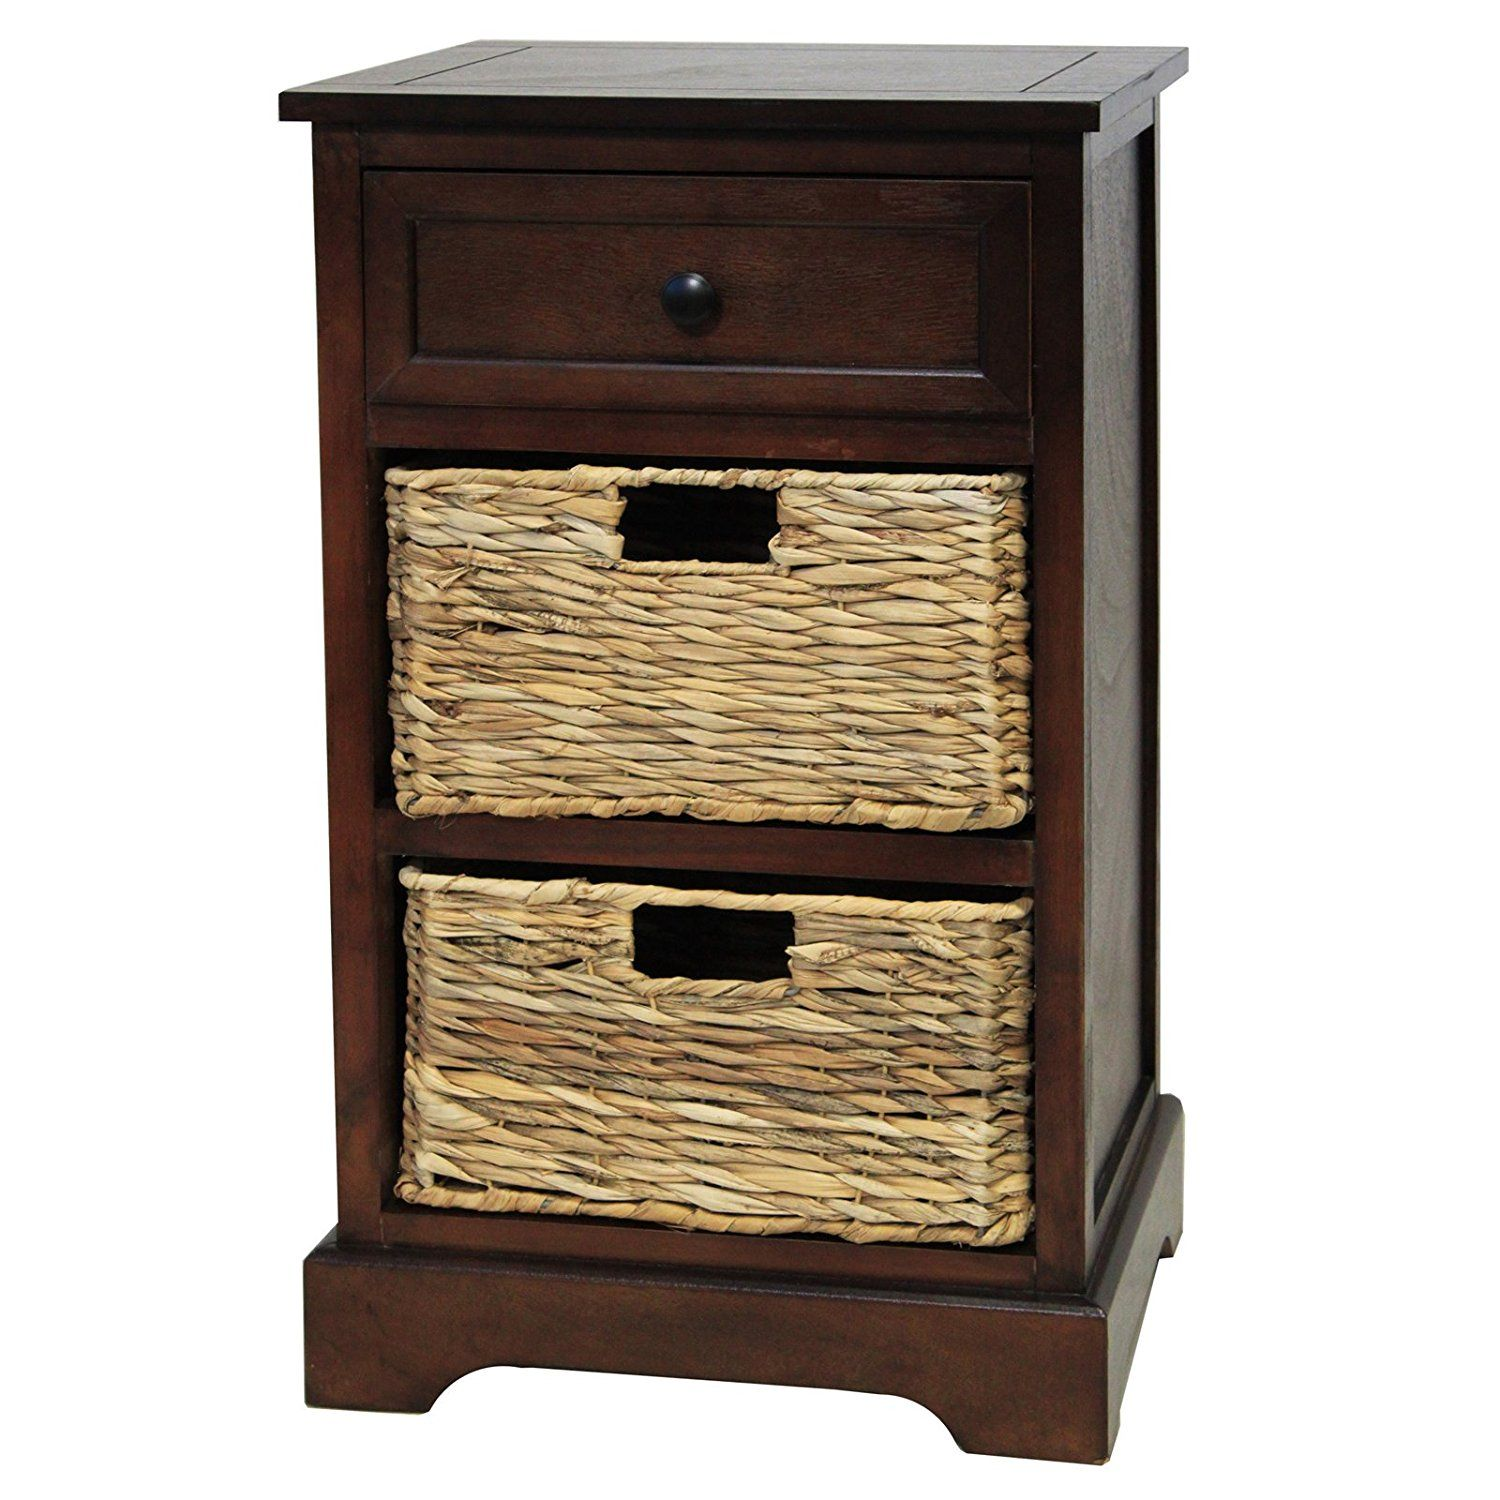 Furnitures Best Coffee Finish Malibu 3 Drawer Wicker Nightstand